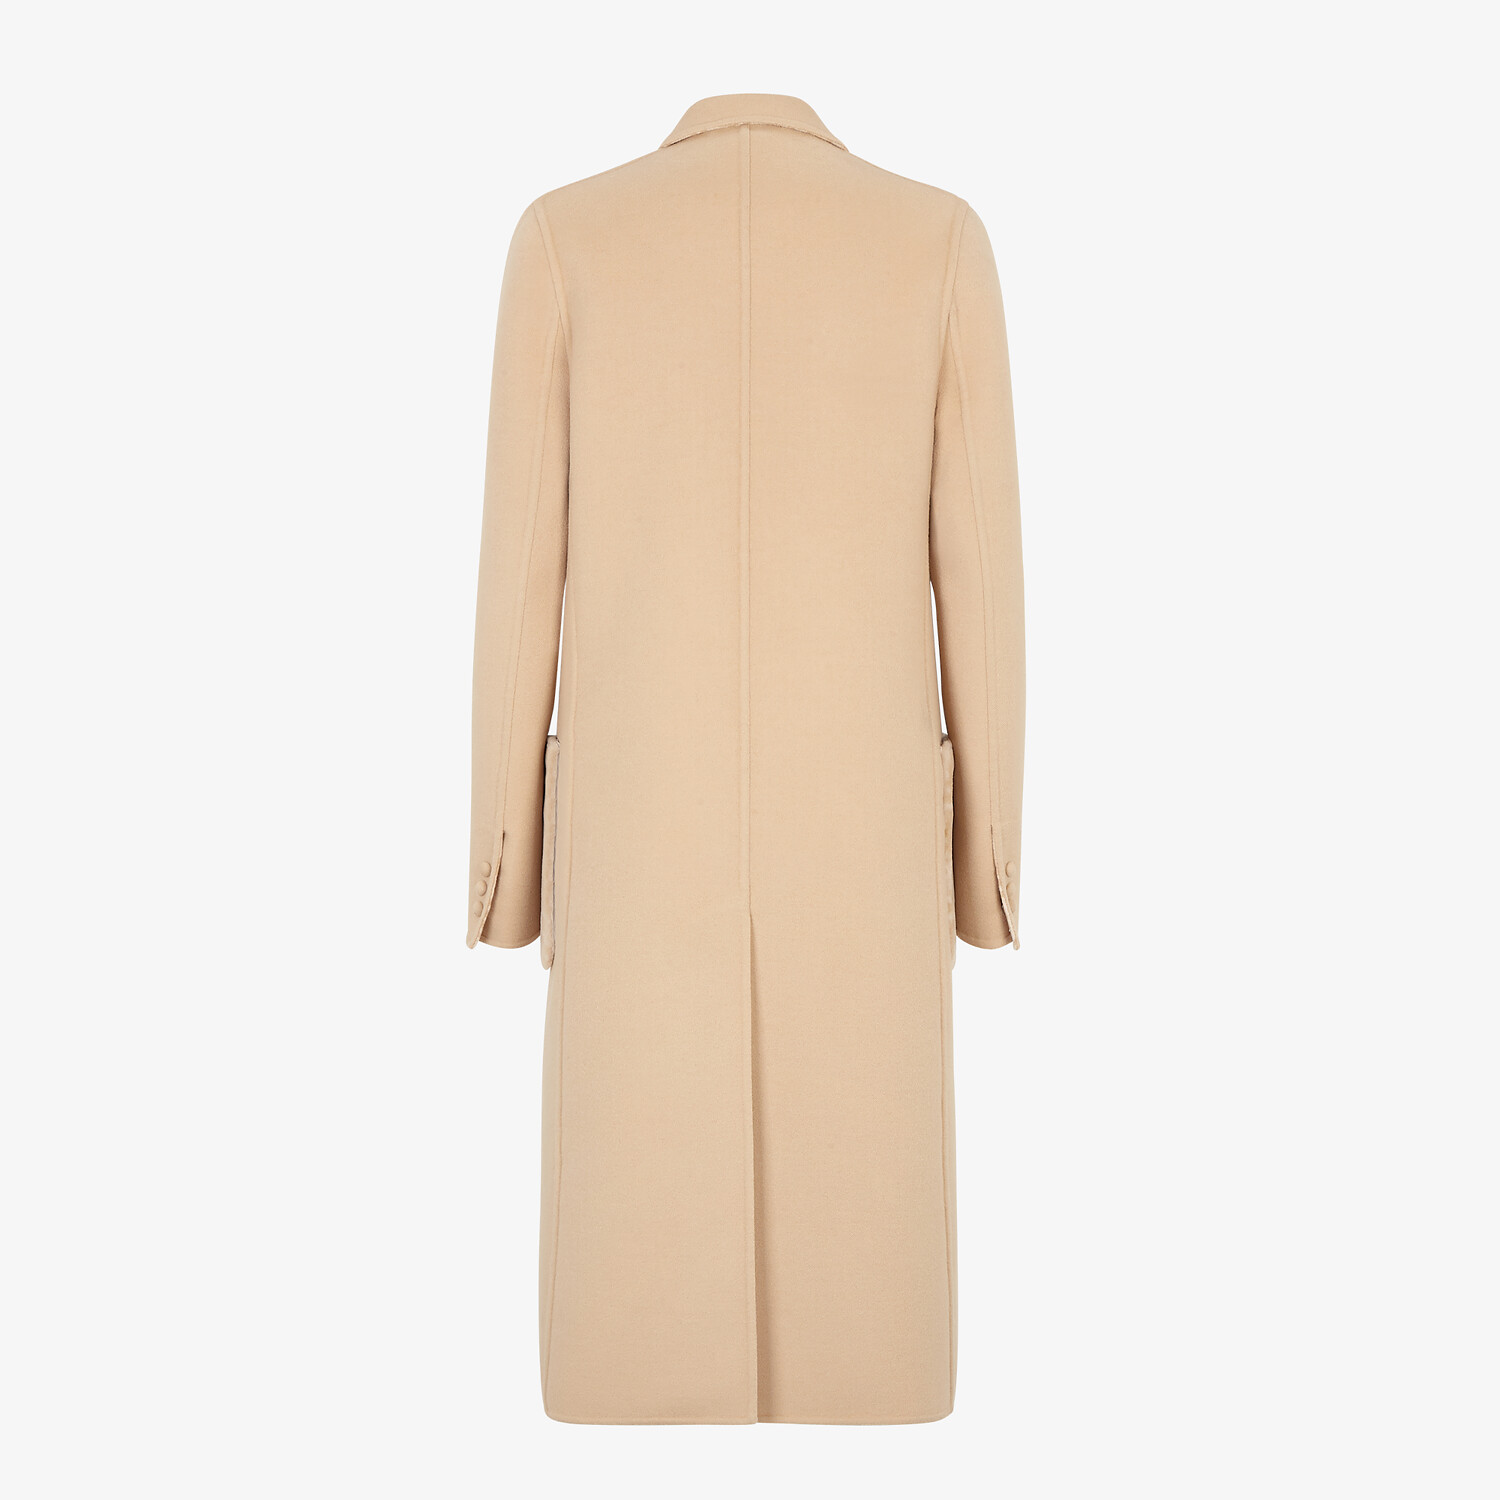 FENDI COAT - Beige double-sided wool coat - view 2 detail